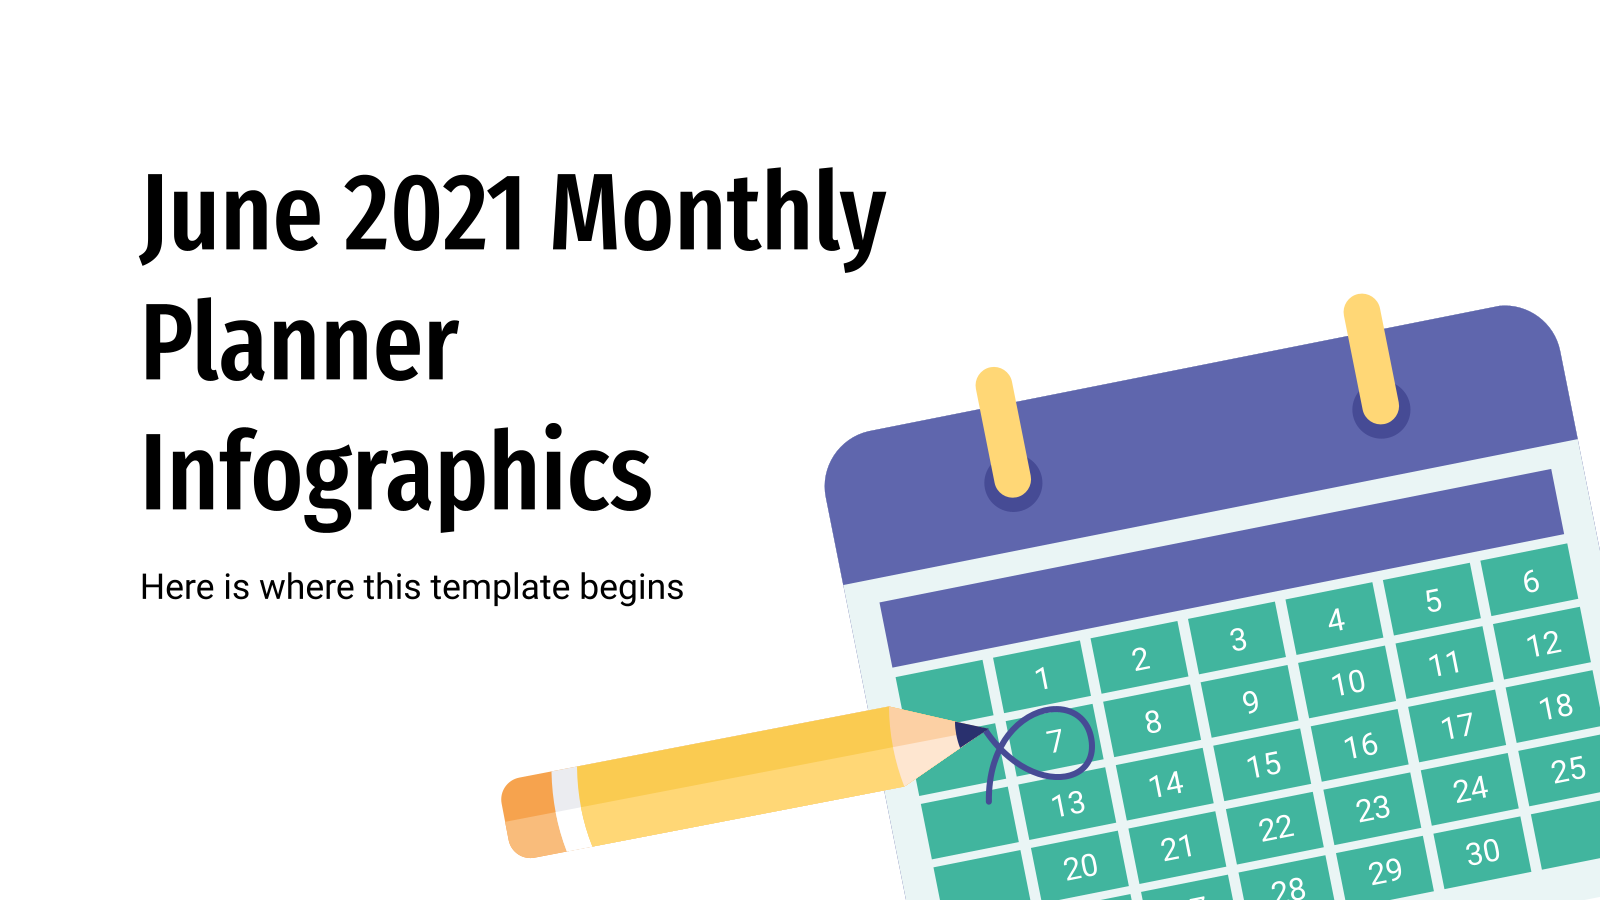 June 2021 Monthly Planner Infographics presentation template